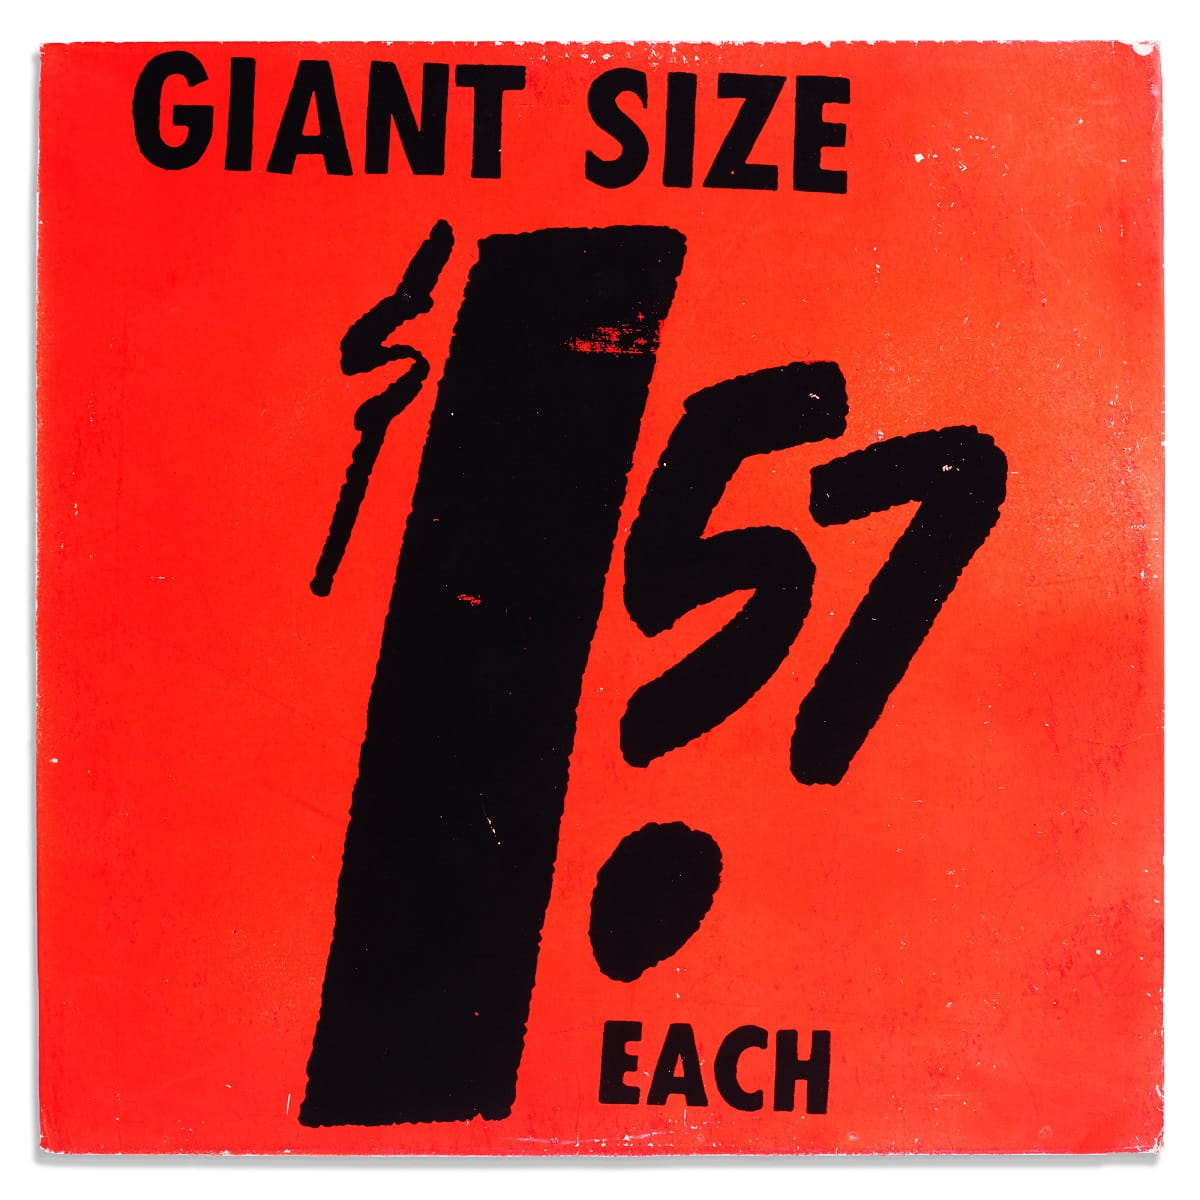 ANDY-WARHOL_Giant-Size-$1.57-Each-1963_vinyl